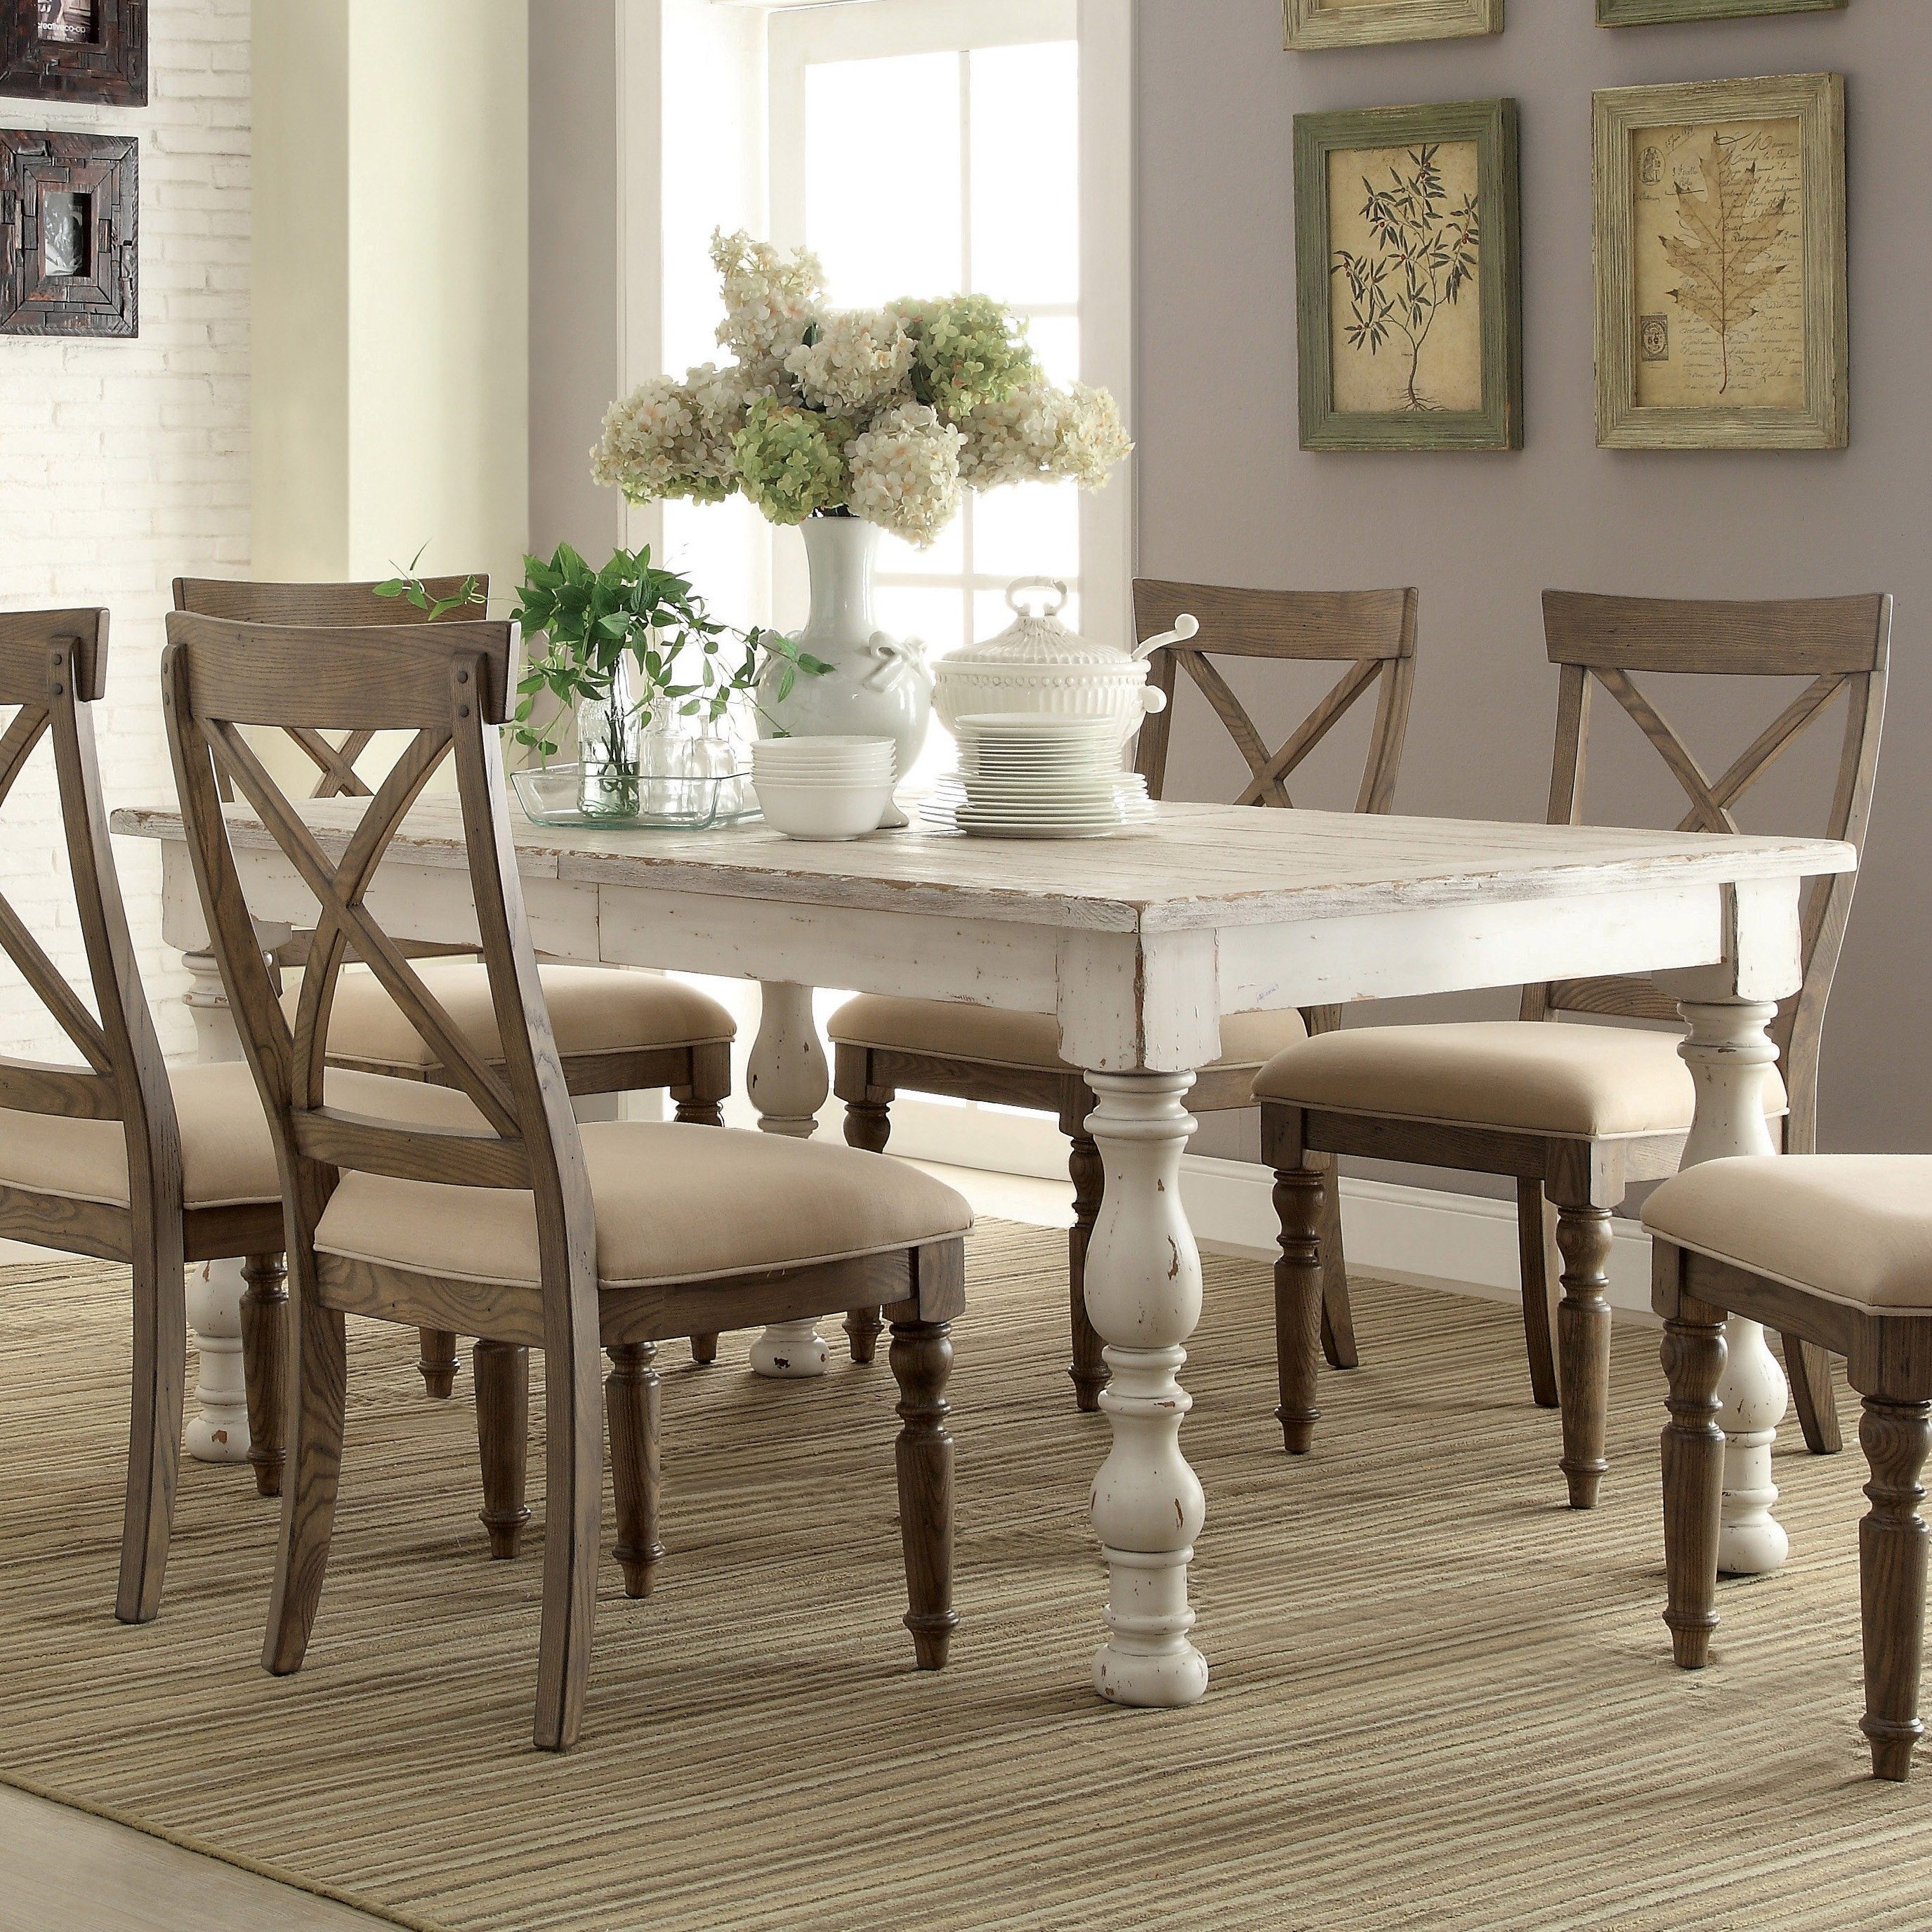 Aberdeen wood rectangular dining table and chairs in for Breakfast room furniture